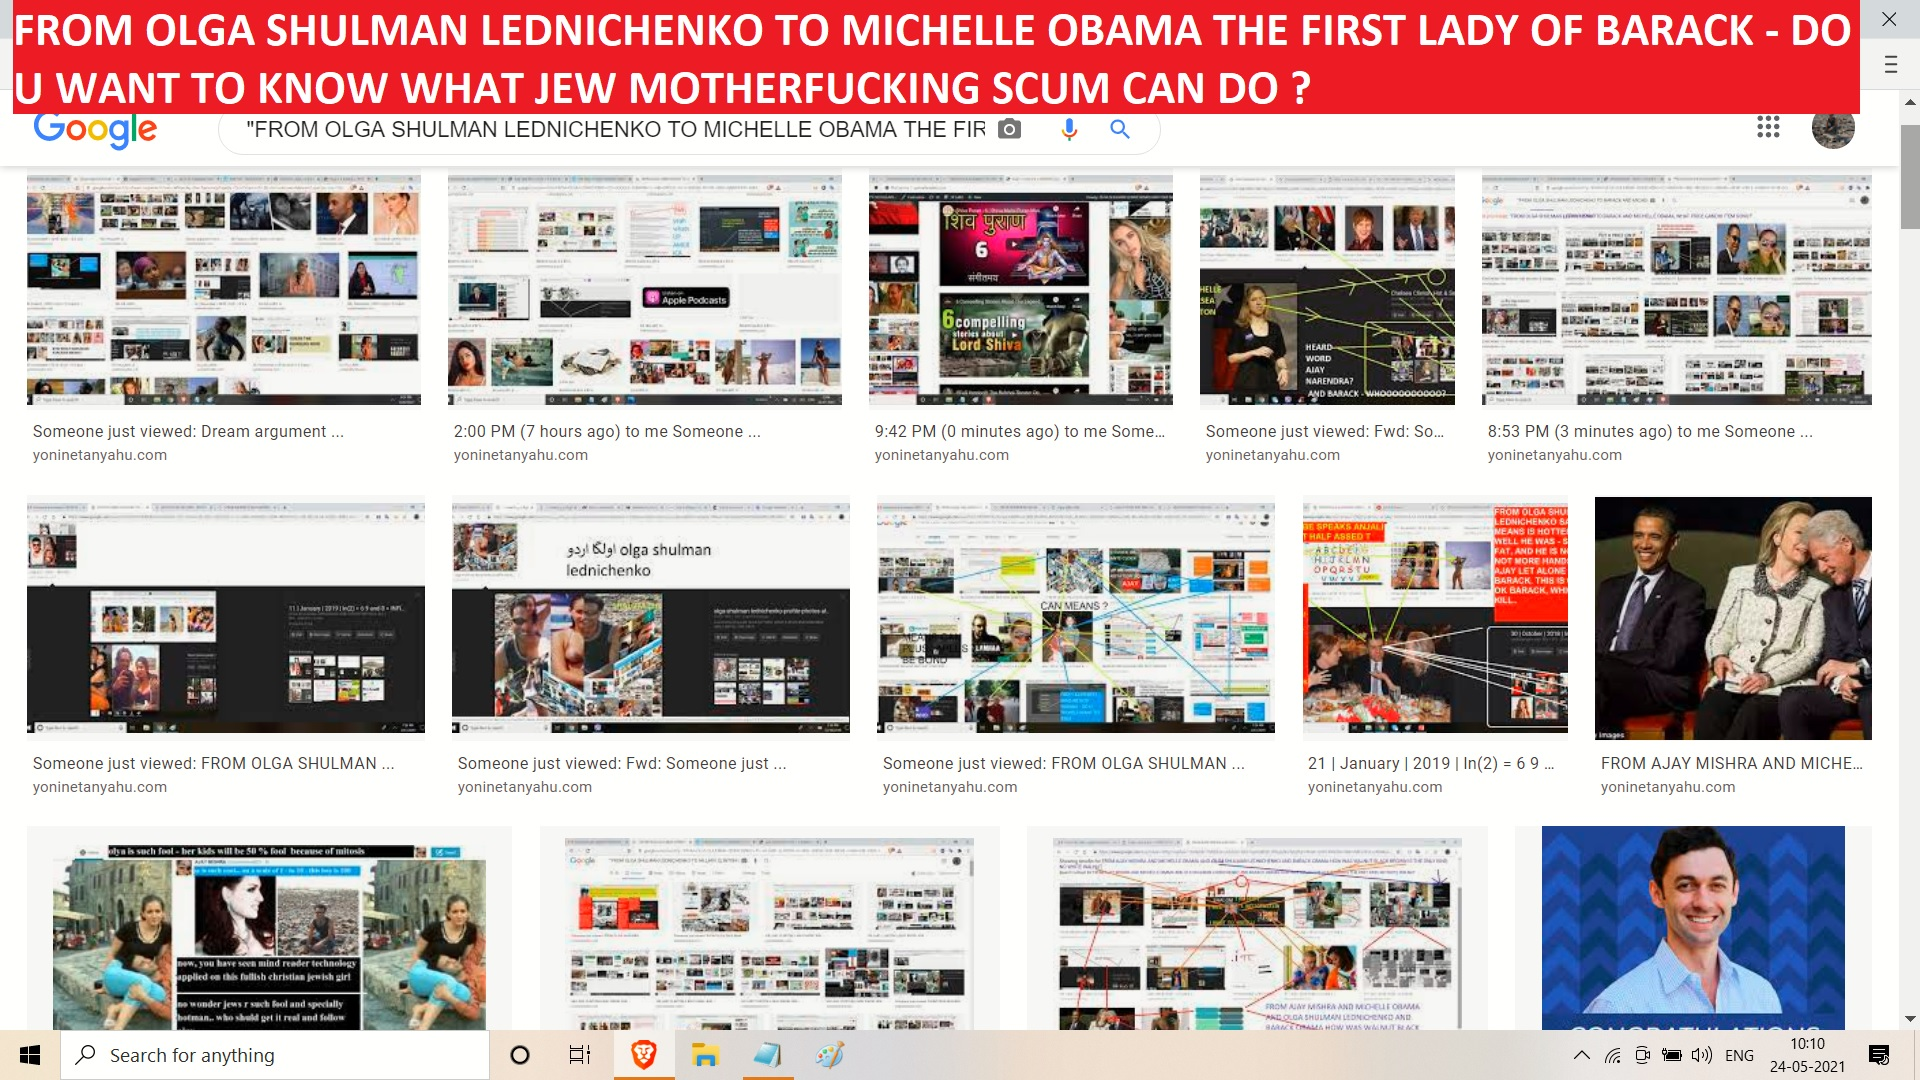 FROM OLGA SHULMAN LEDNICHENKO TO MICHELLE OBAMA THE FIRST LADY OF BARACK - DO U WANT TO KNOW WHAT JEW MOTHERFUCKING SCUM CAN DO